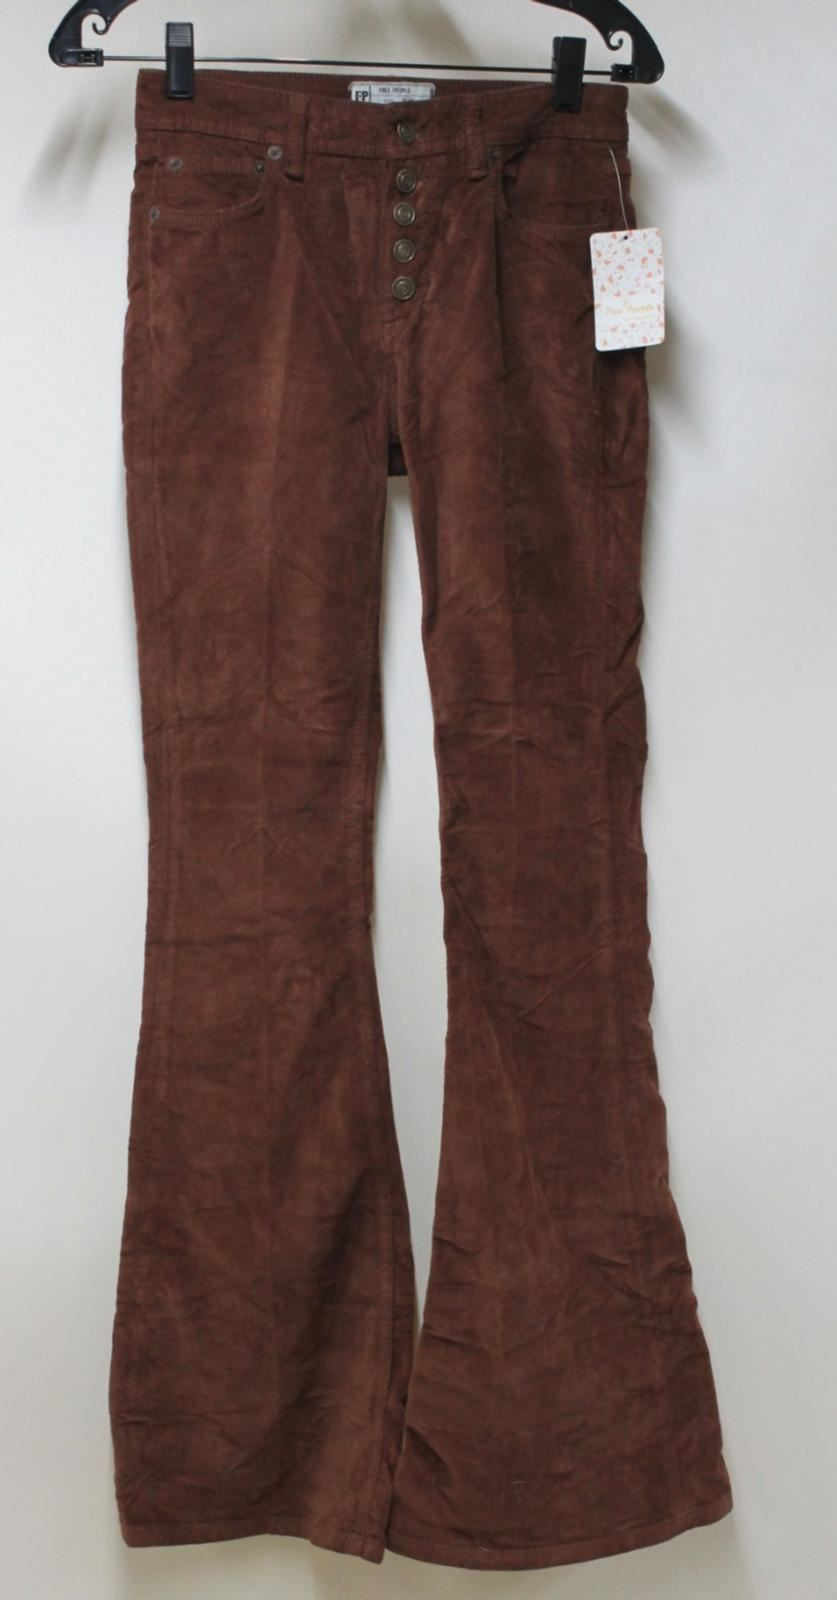 BNWT FREE PEOPLE Ladies Tobacco Brown Cotton Blend Flared Corduroy Jeans W25